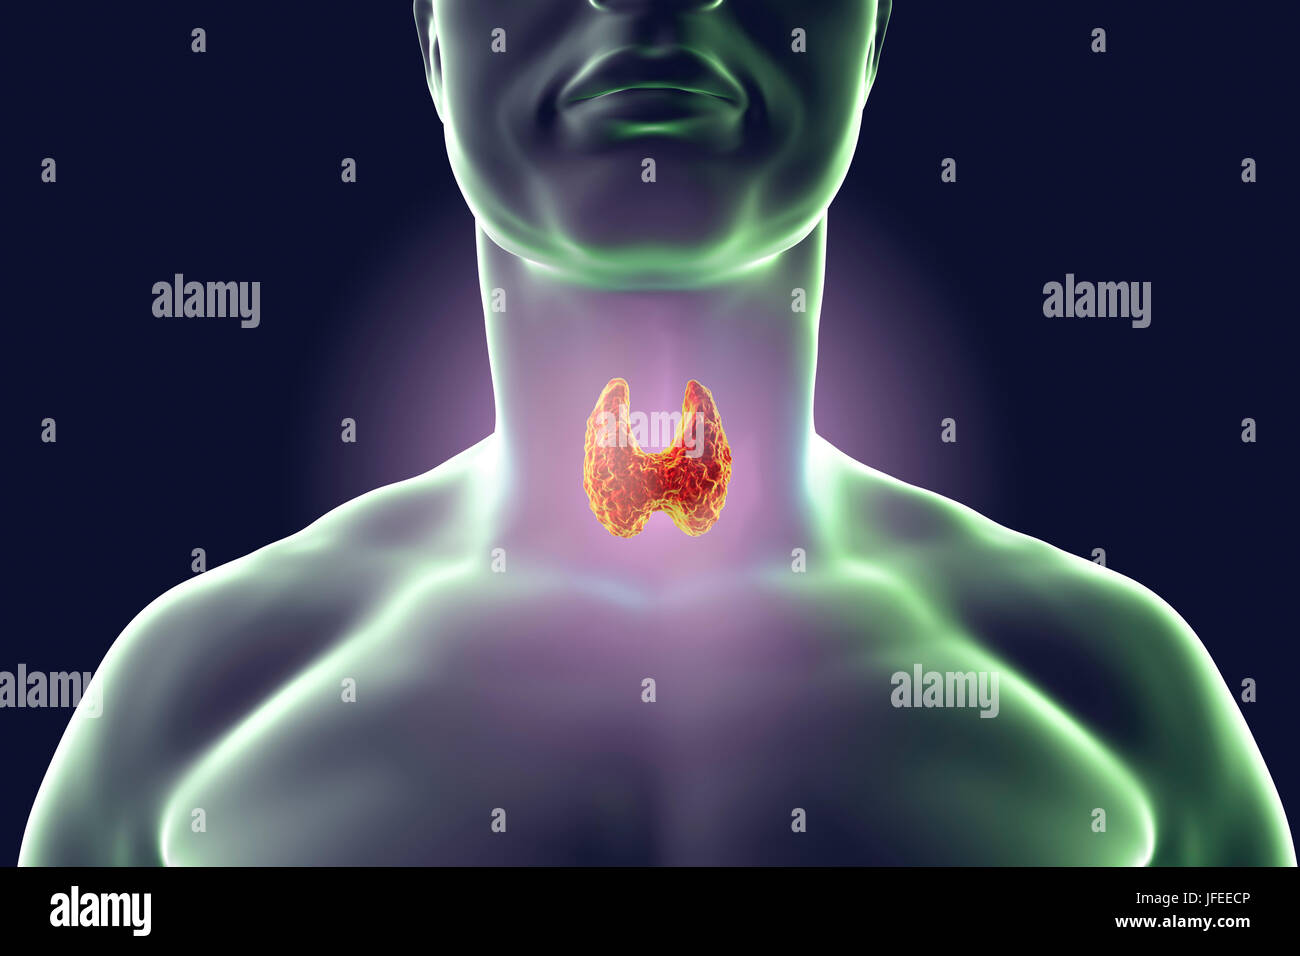 Thyroid gland in a man's neck, computer illustration. - Stock Image